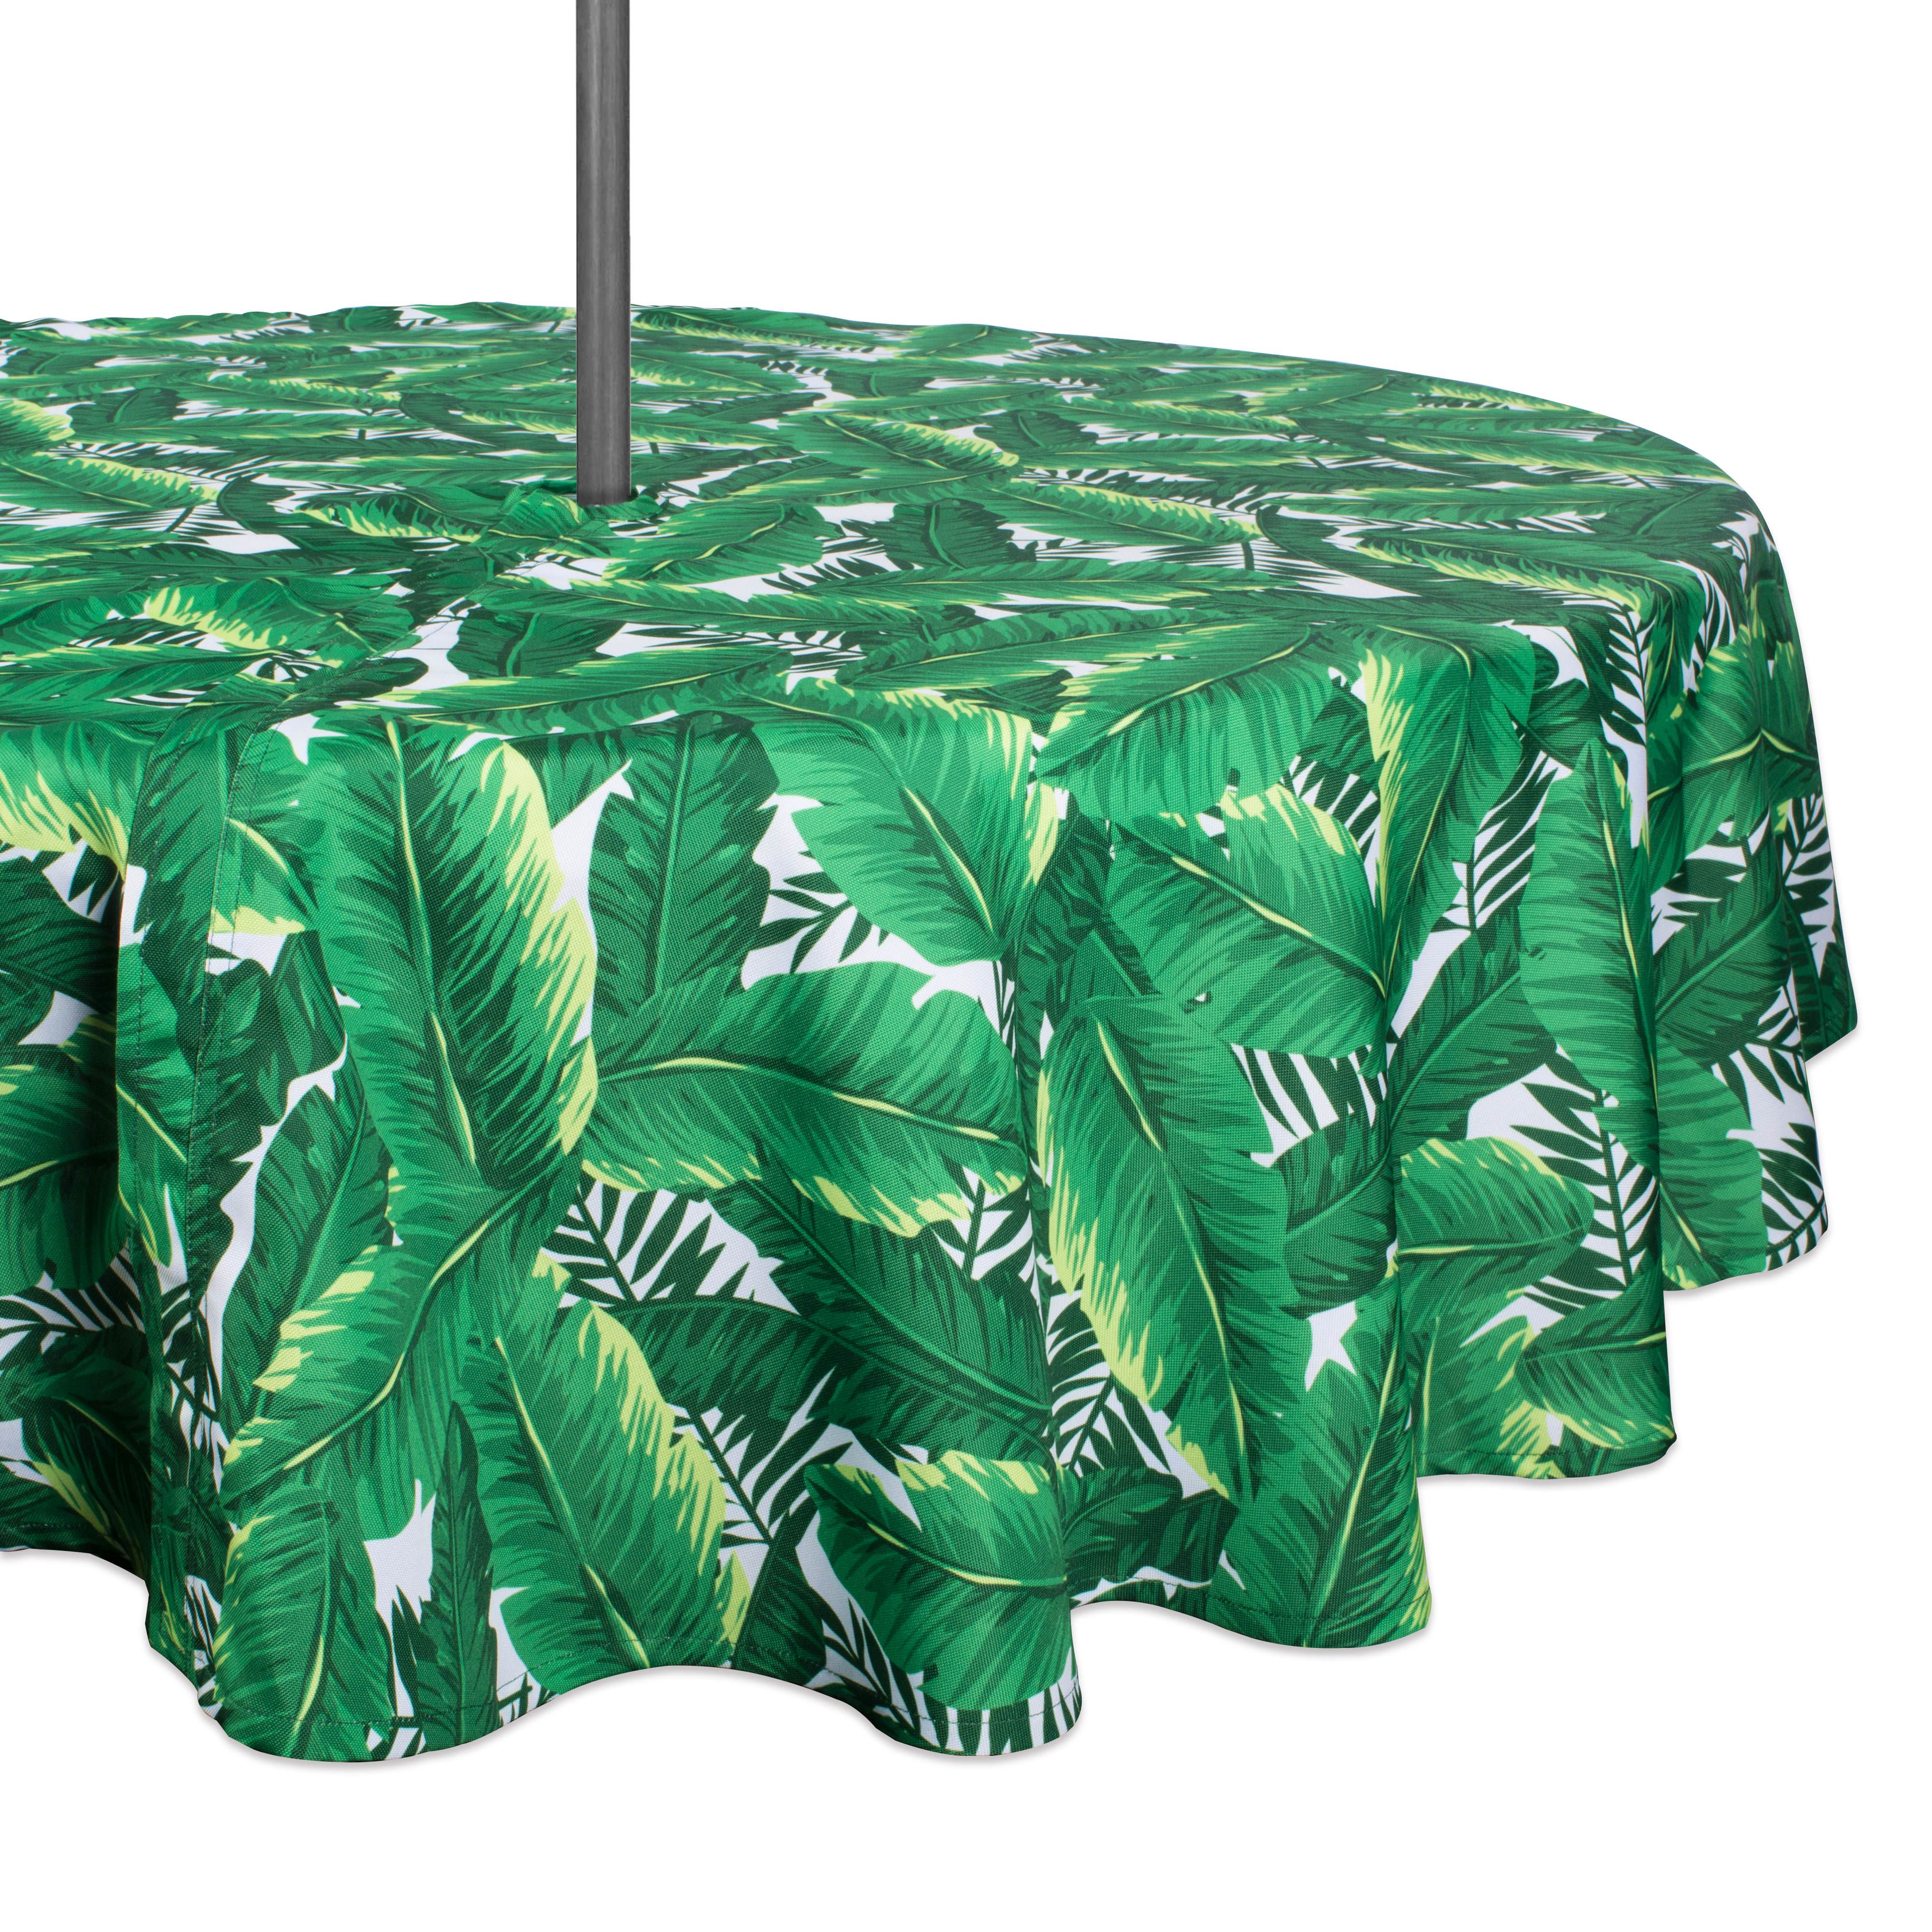 "Design Imports Casual Round Banana Leaf Umbrella Outdoor Tablecloth, 60"" x 60"", 100% Polyester, Green"